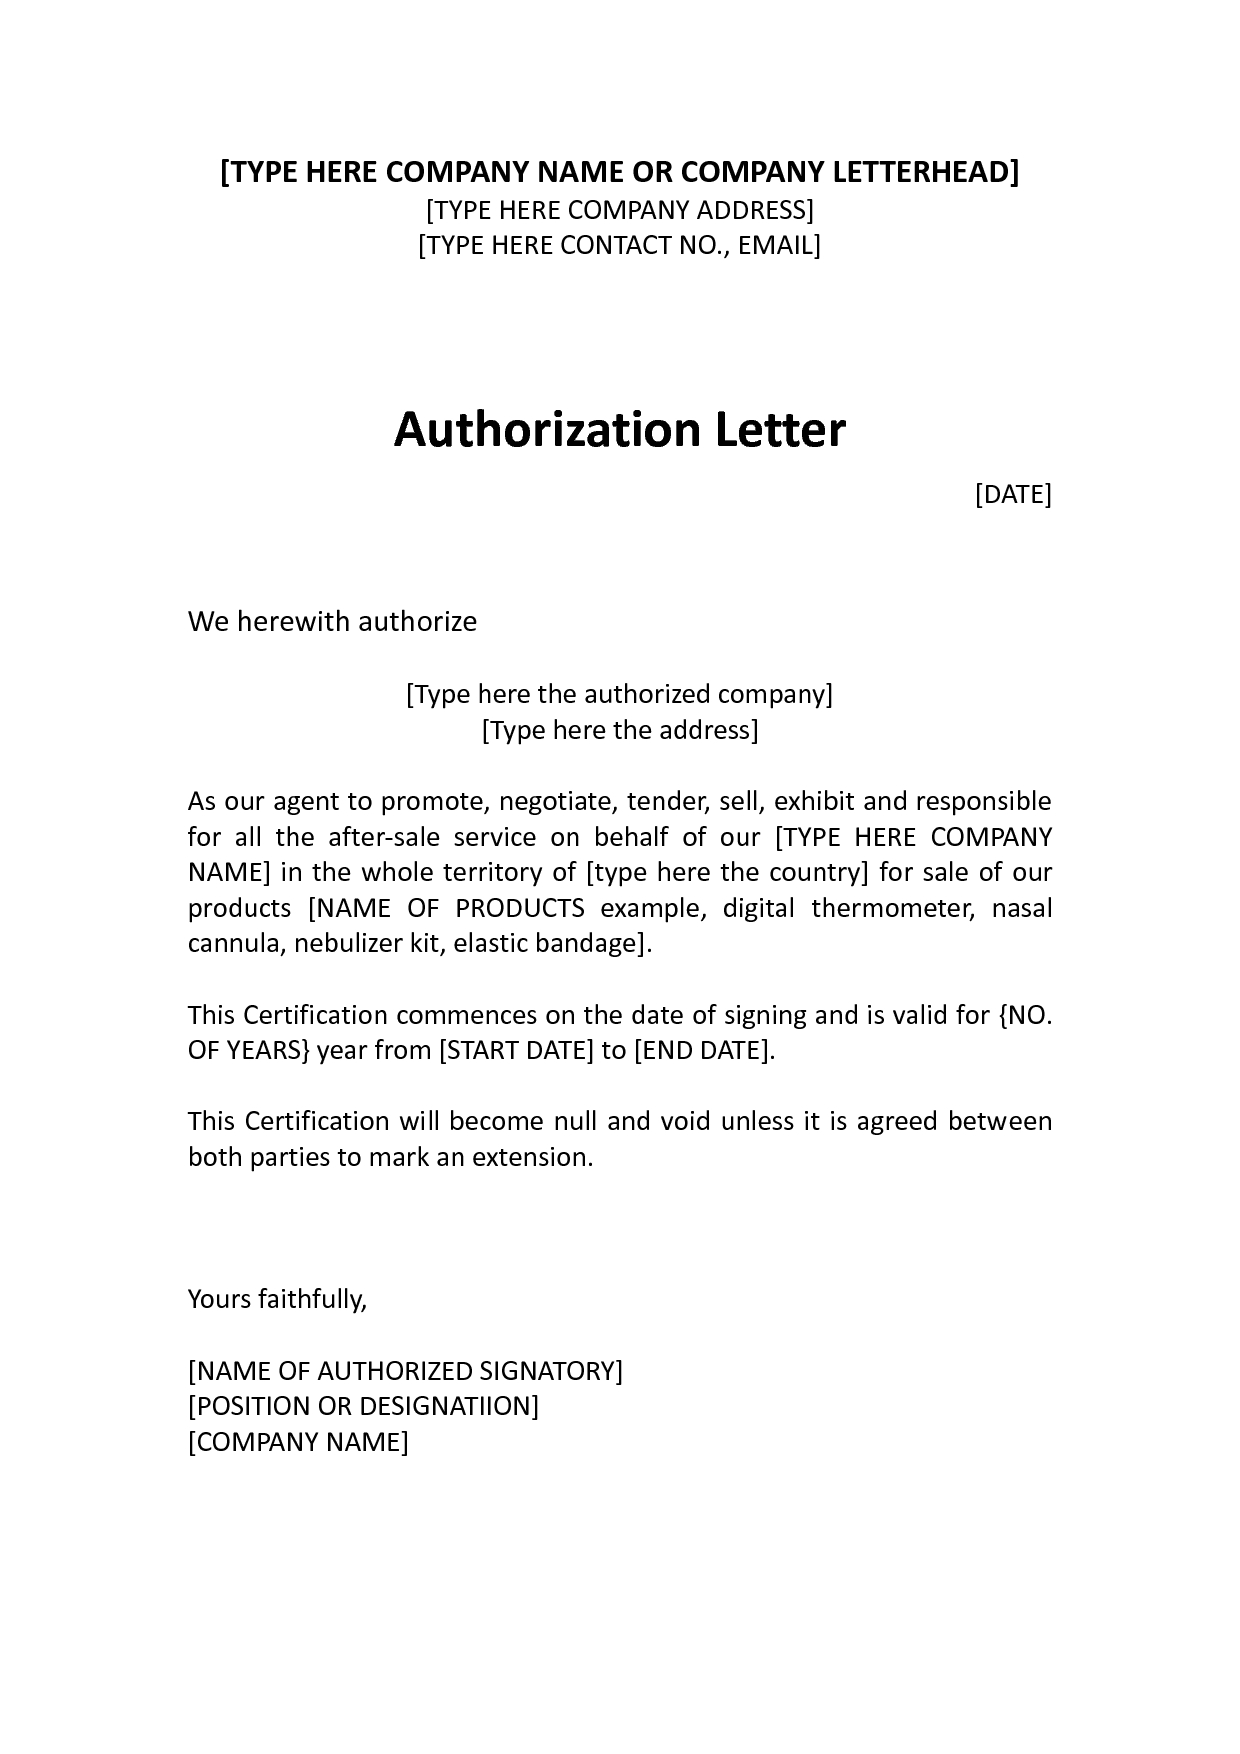 Monetary Donation Letter Template - Authorization Distributor Letter Sample Distributor Dealer